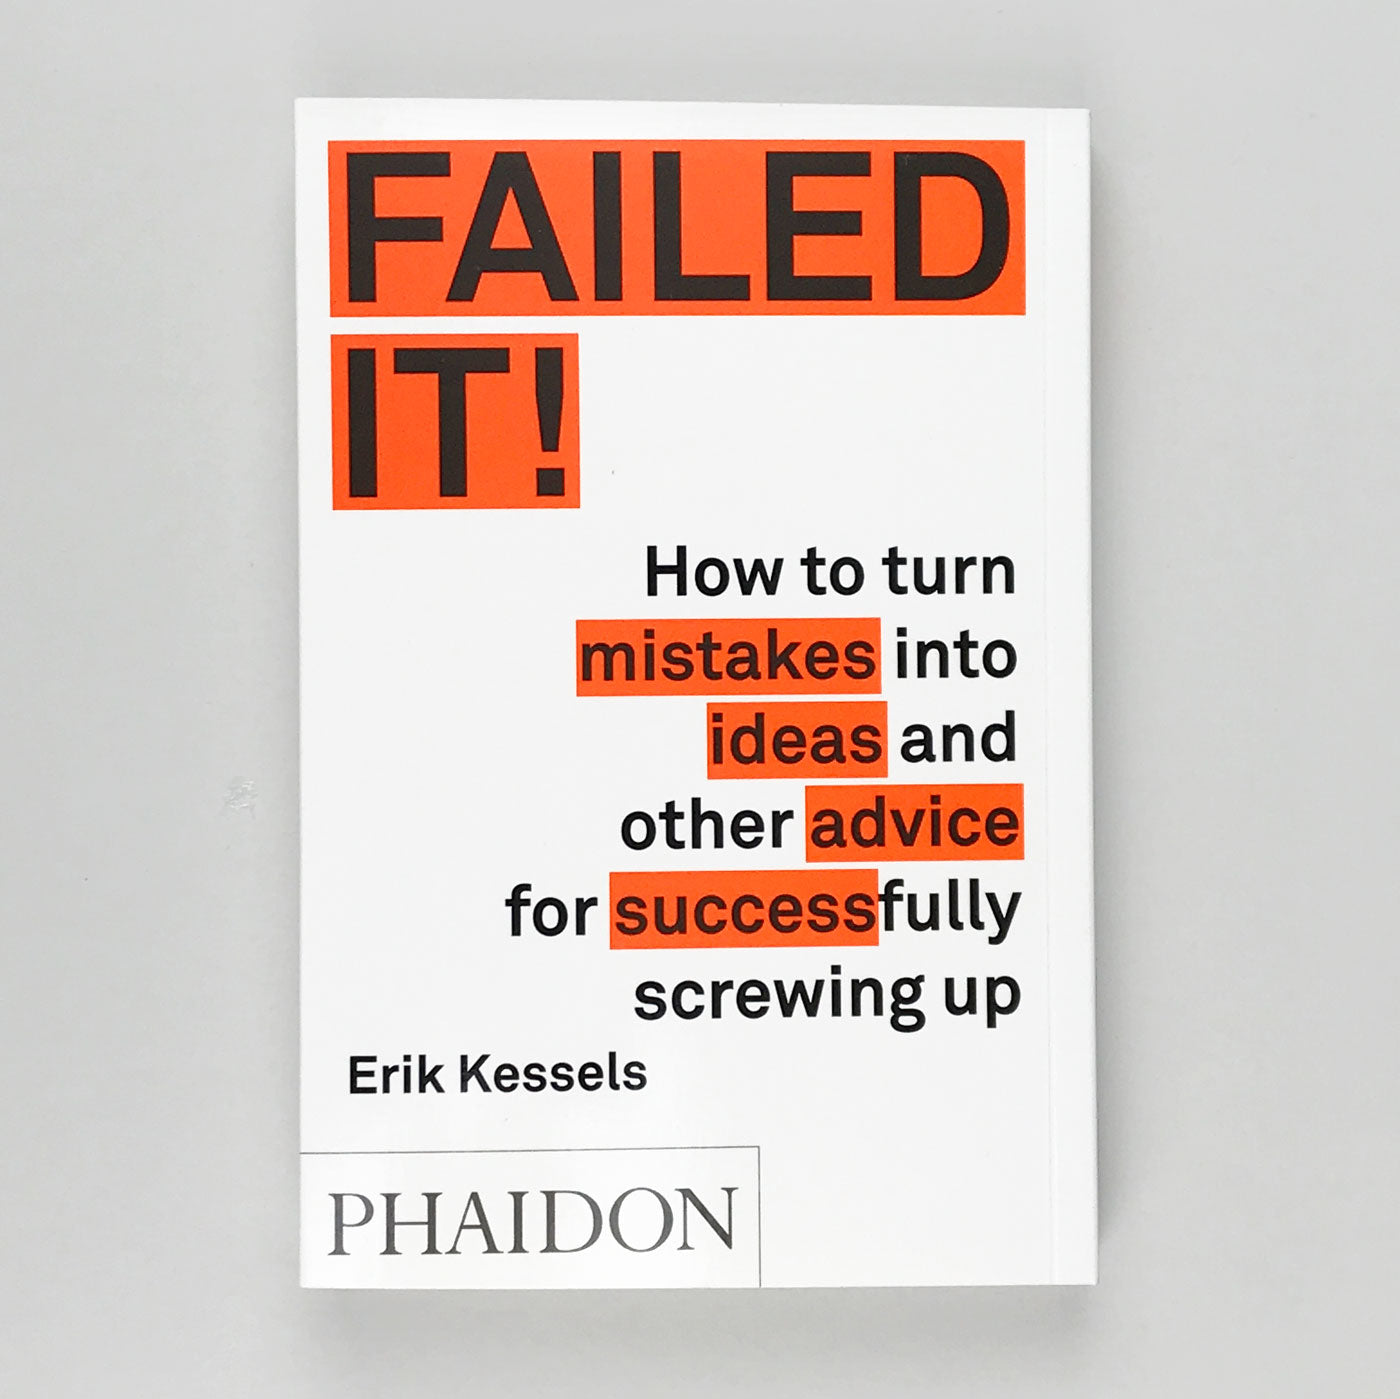 Failed It by Eric Kessels